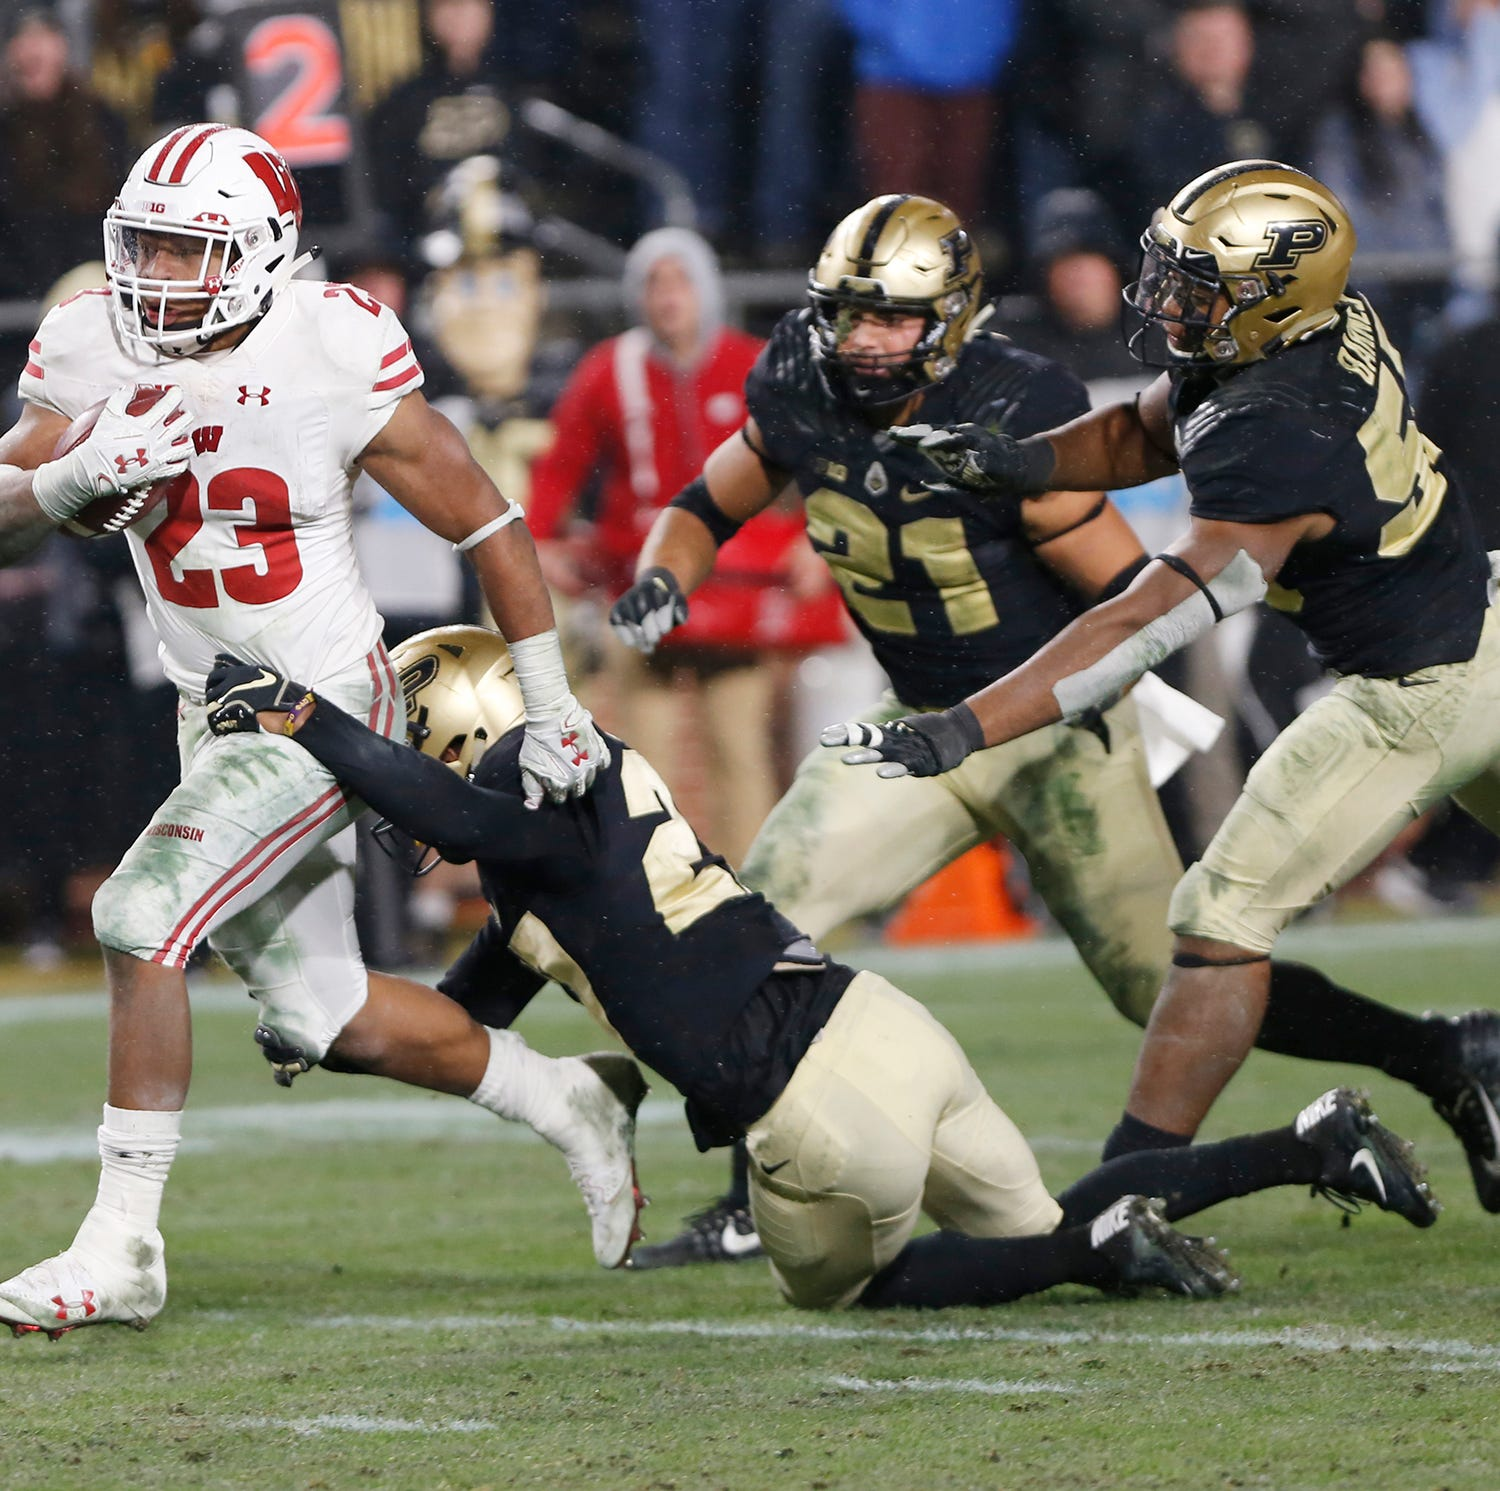 Wisconsin 47, Purdue football 44, 3 OT's | Grading the Boilers